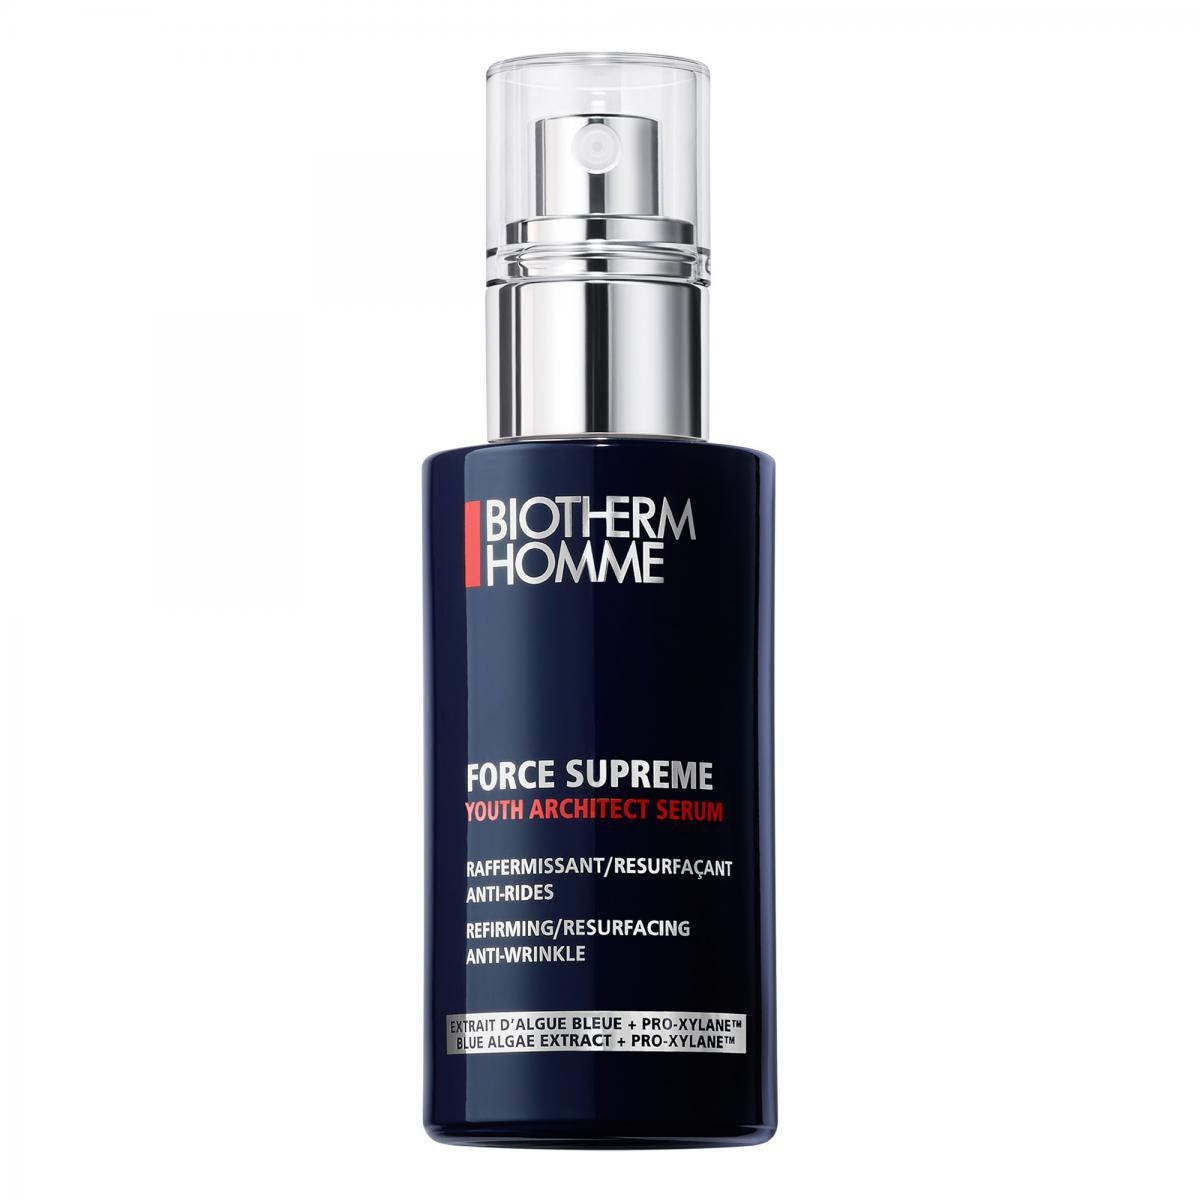 SERUM ANTI-AGE FORCE SUPREME Biotherm Homme